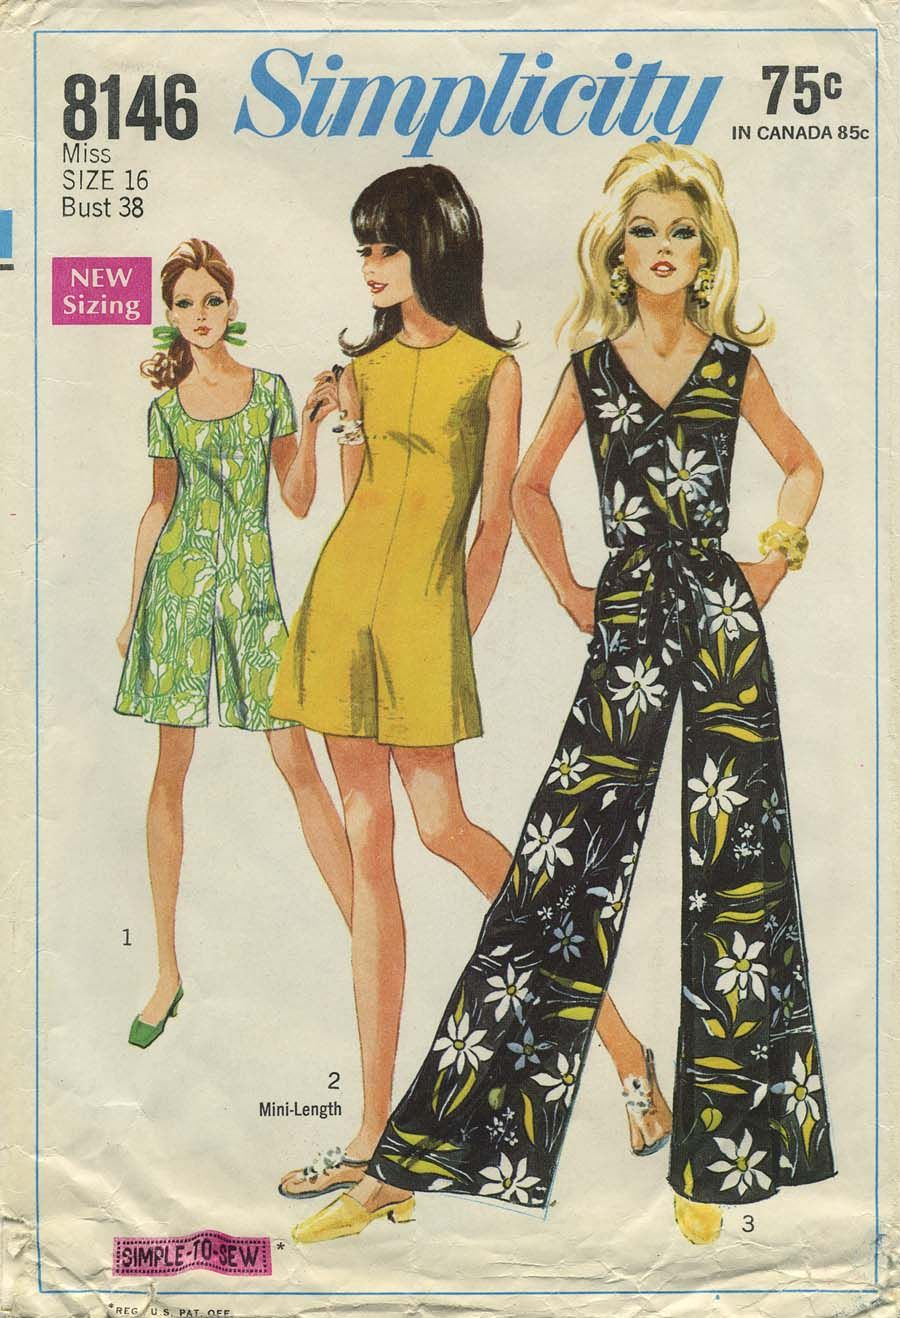 Vintage Sewing Pattern Jumpsuit Simplicity 8146 Year 1969